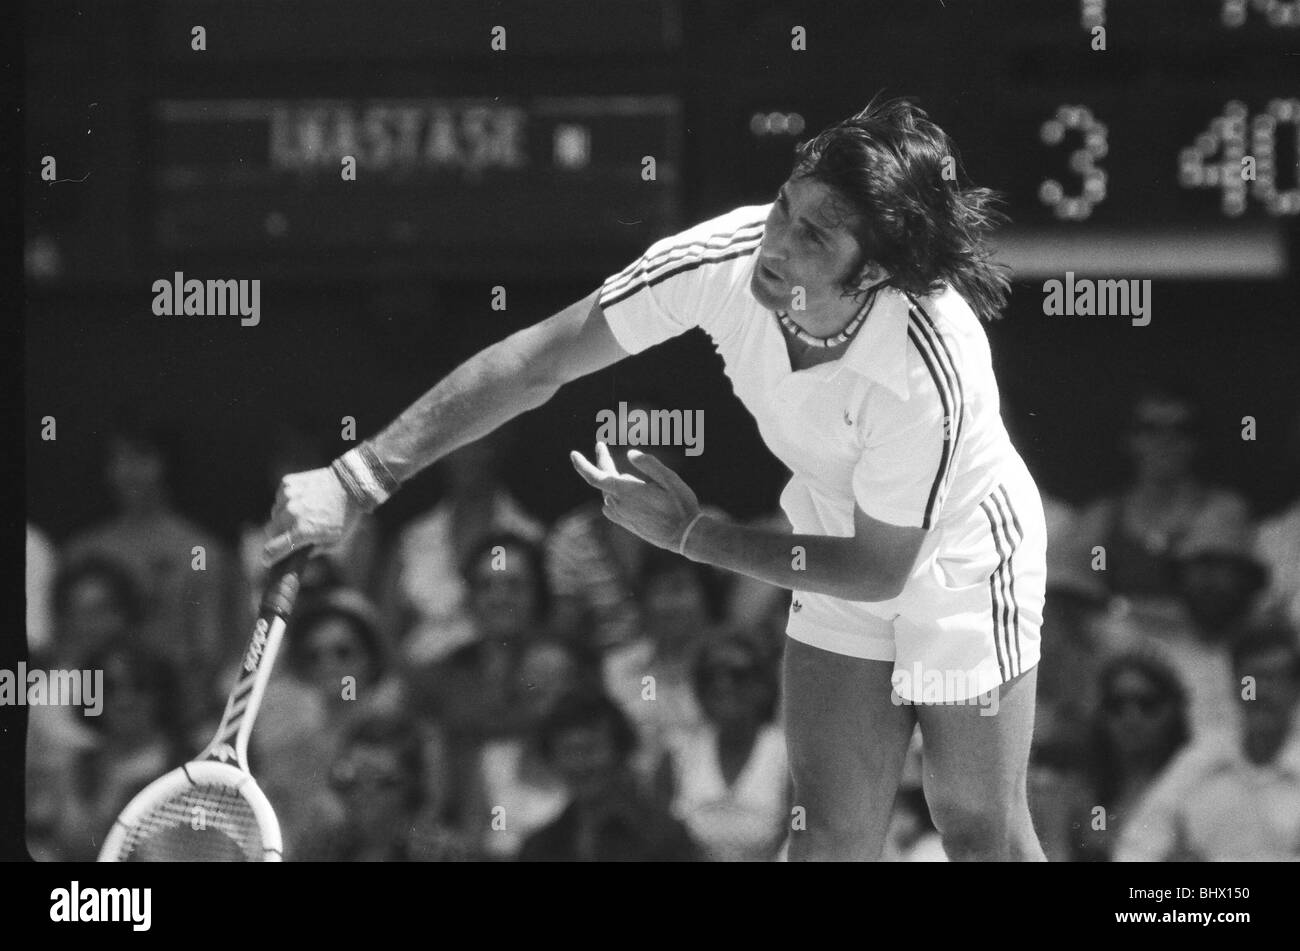 Wimbledon 1976 Ilie Nastase against Ramirez 1st July 1976 Stock